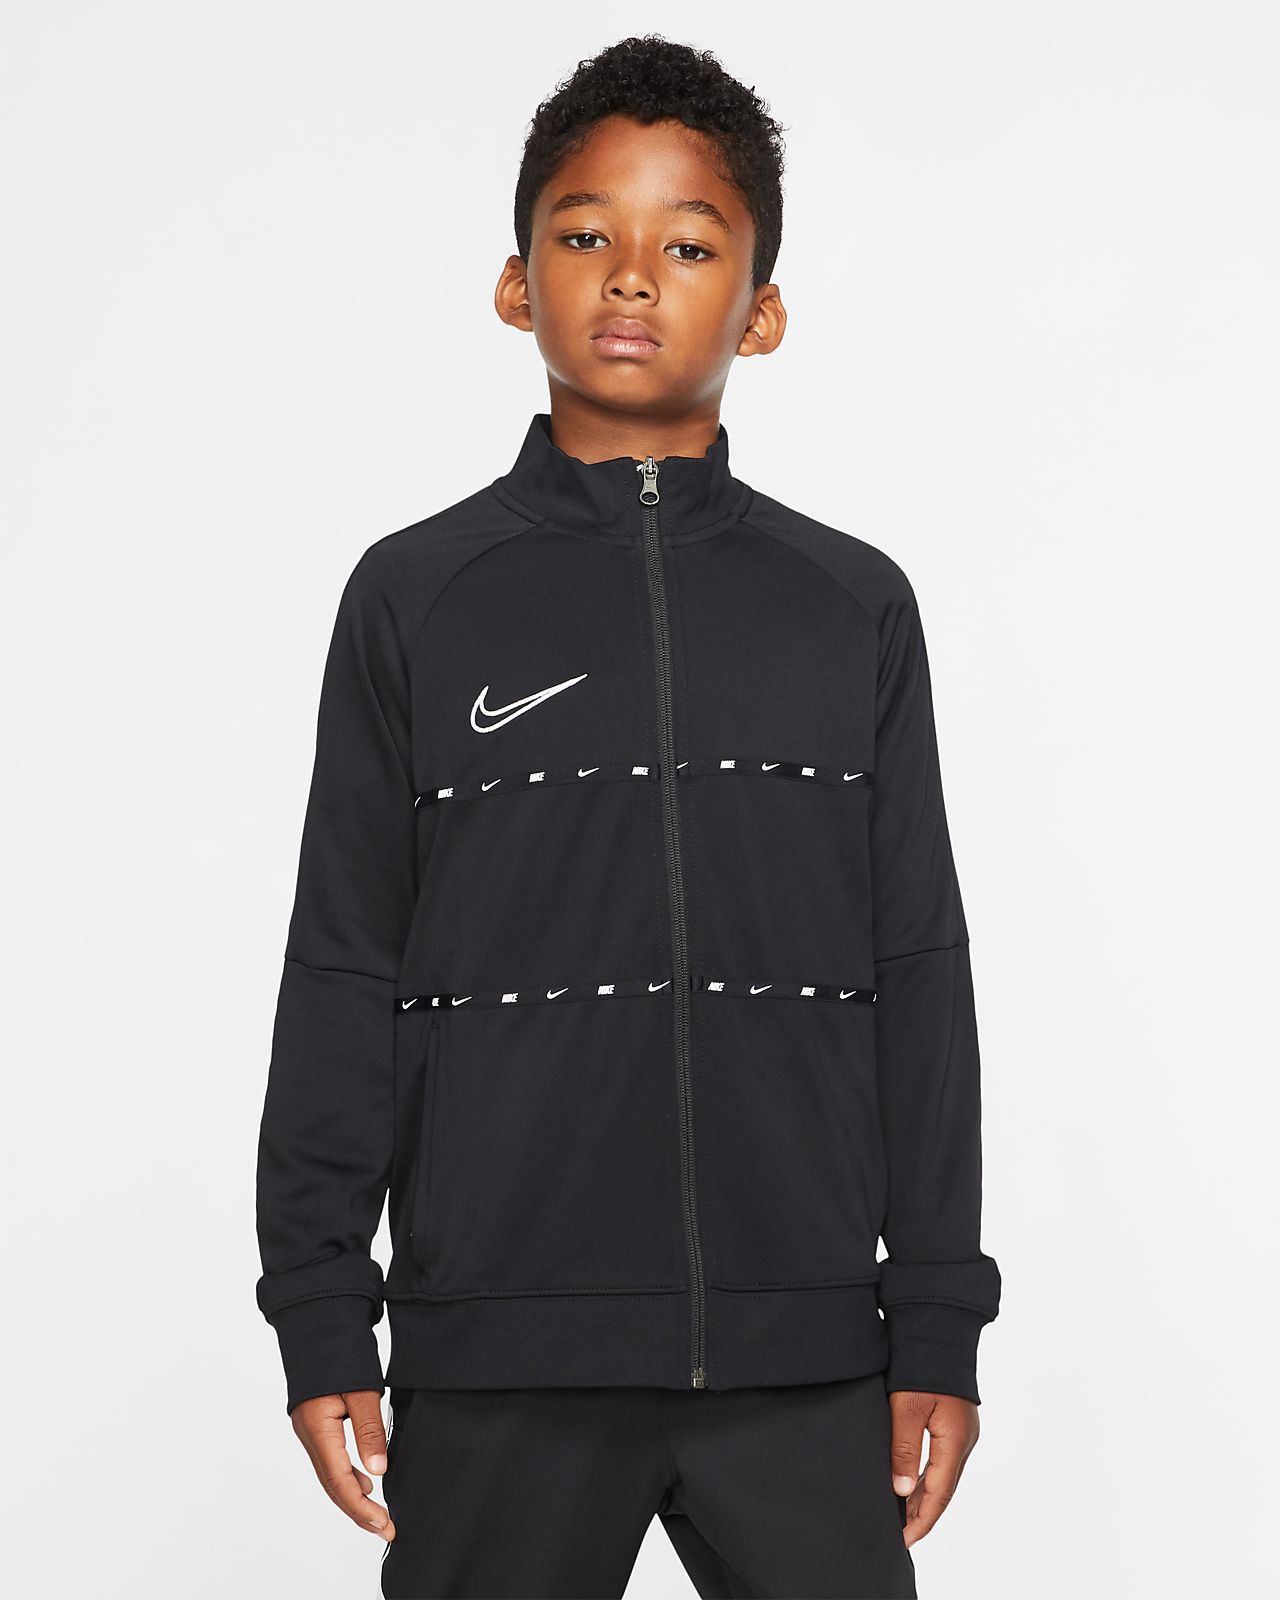 Nike Dri-FIT Academy Big Kids' Soccer Jacket